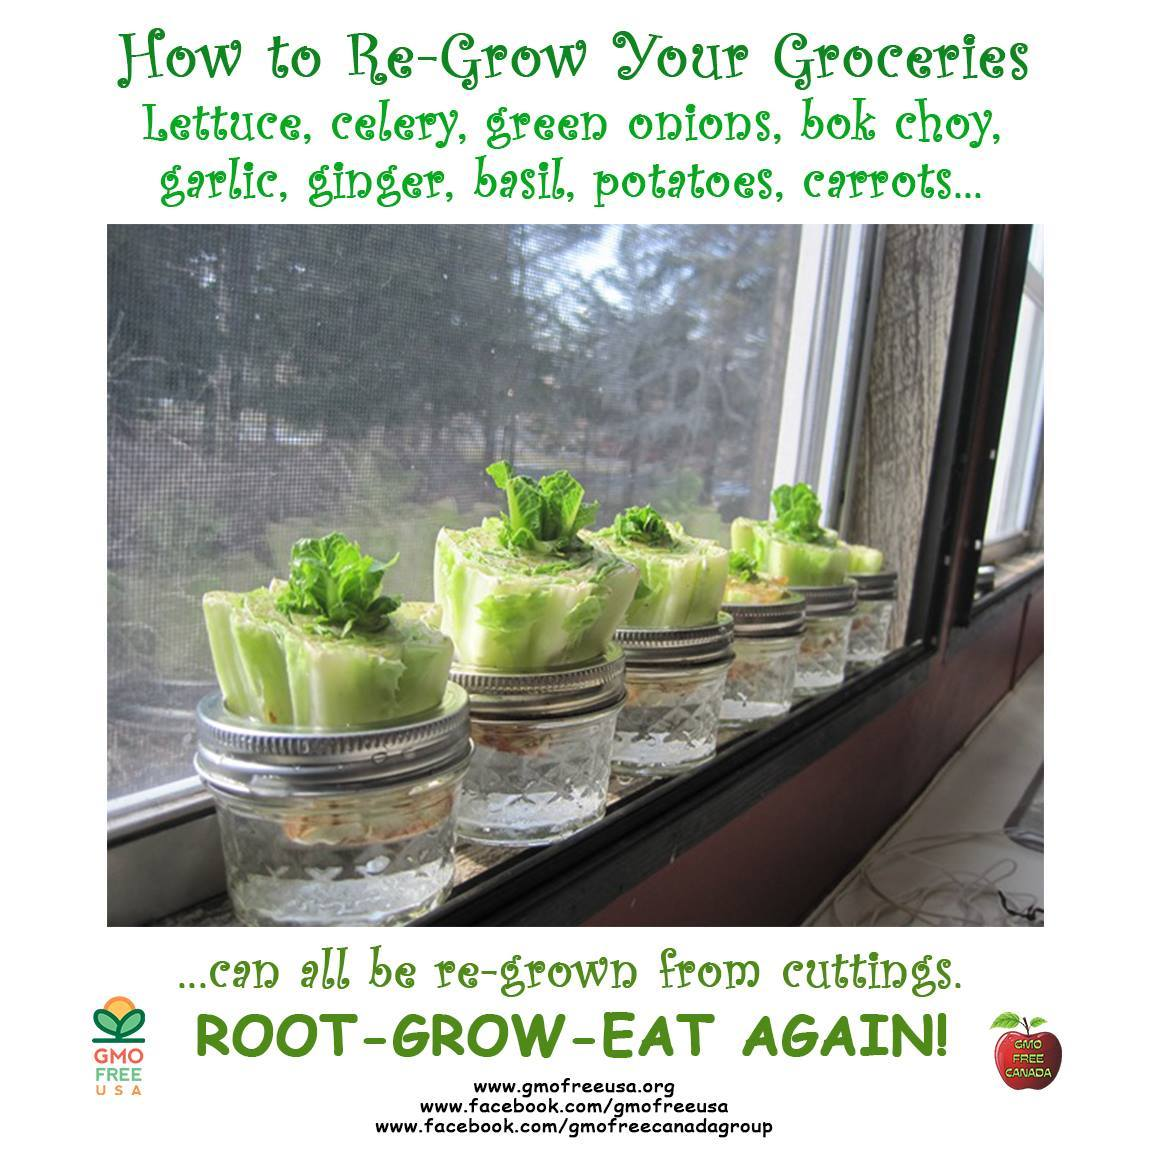 RT @GMOFreeUSA: Here's an idea to stretch your grocery money and grow your own, organically.... https://t.co/rXUSSa4IhY https://t.co/PFYBGO…